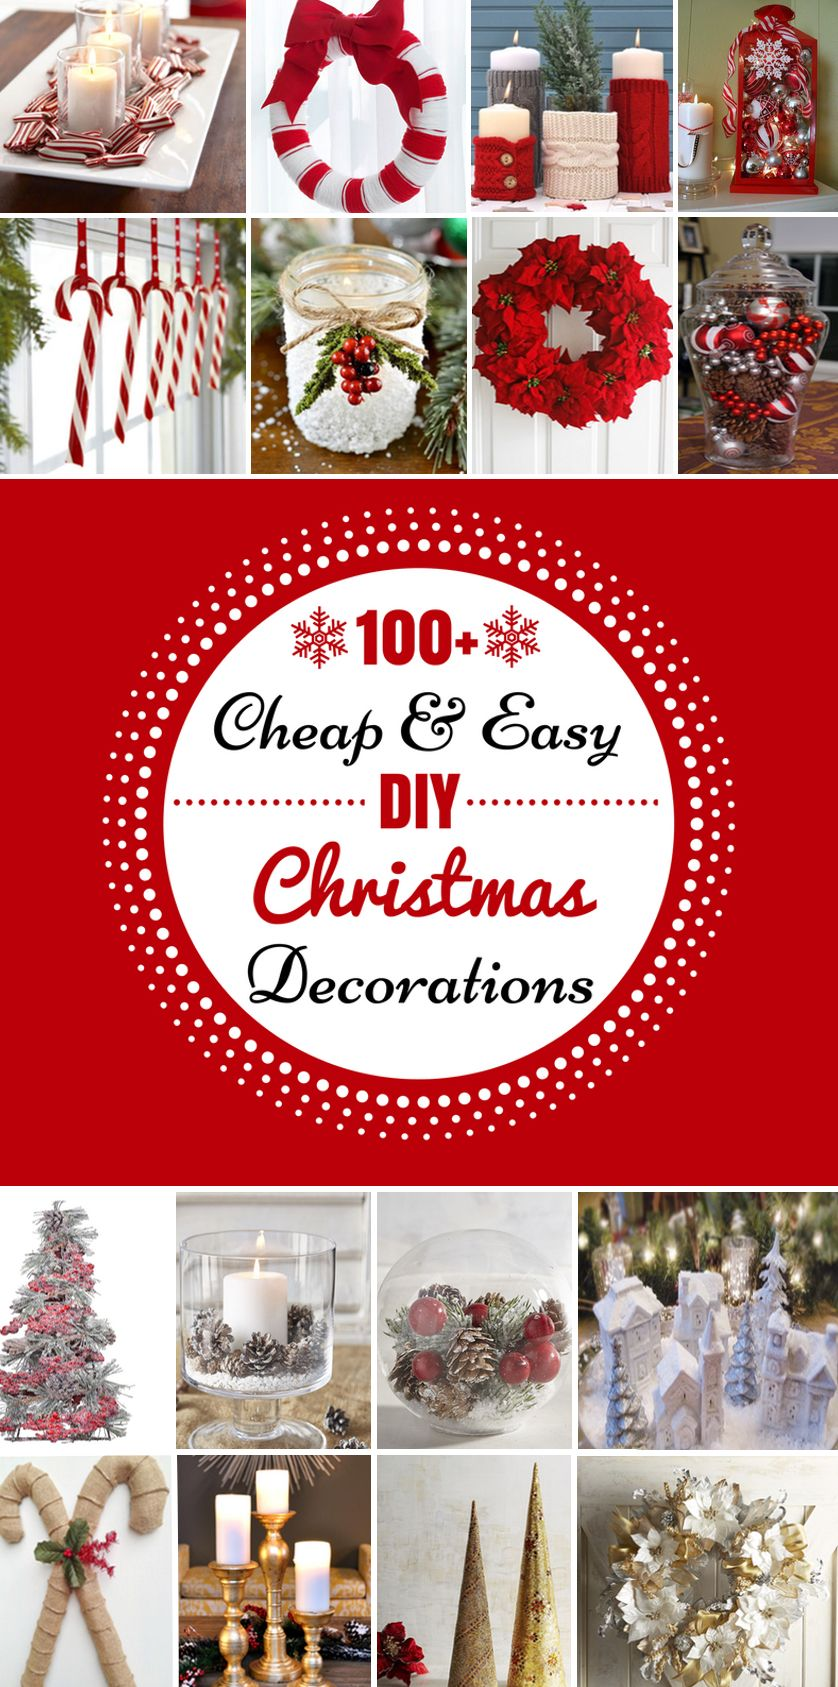 100 cheap easy diy christmas decorations more - Where To Buy Cheap Christmas Decorations